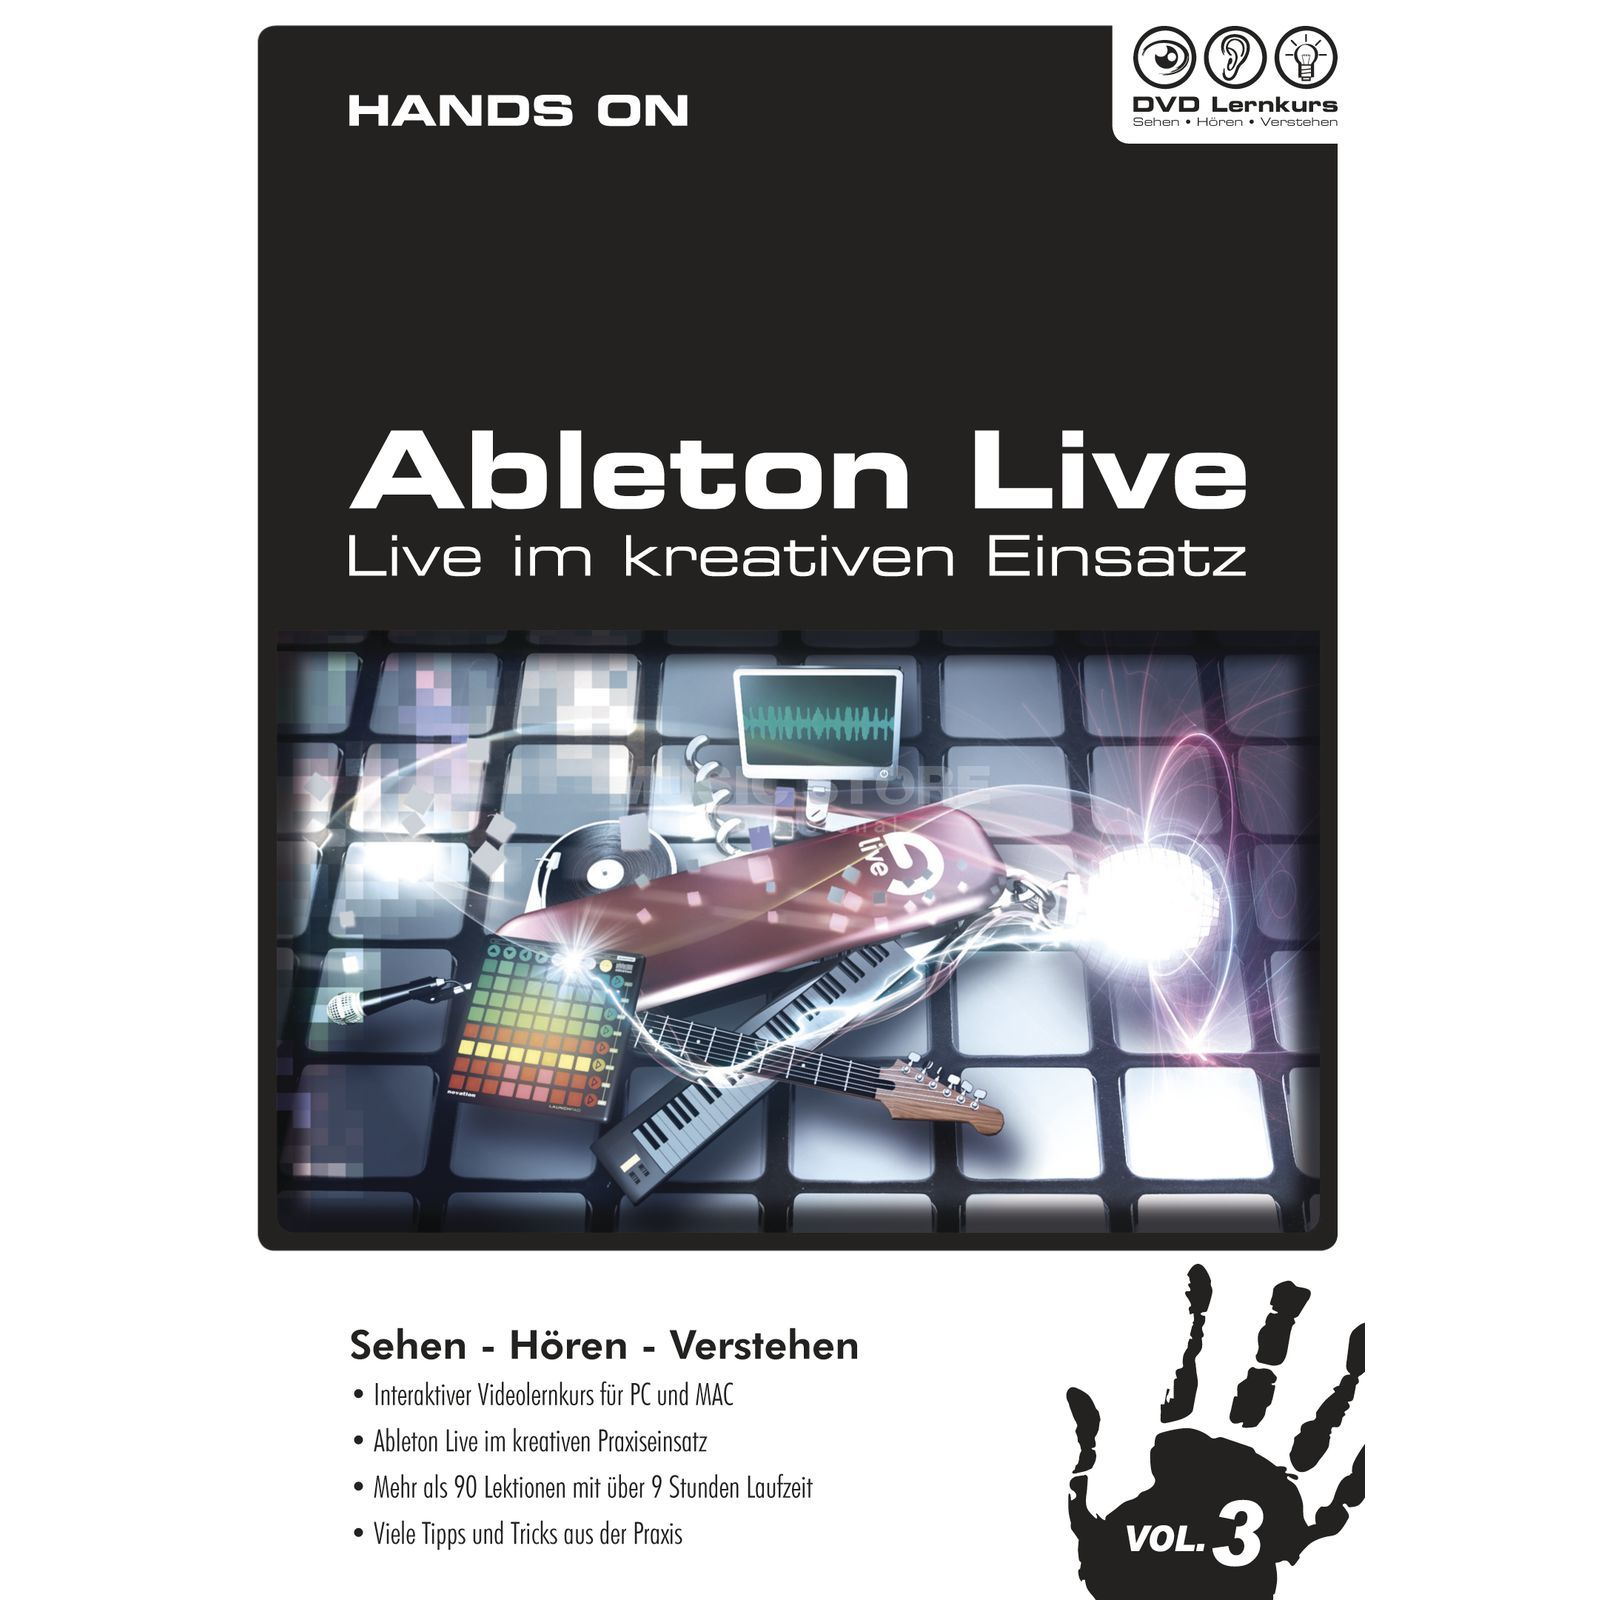 DVD Lernkurs Hands On Ableton Live Vol.3 Performing Live Produktbild